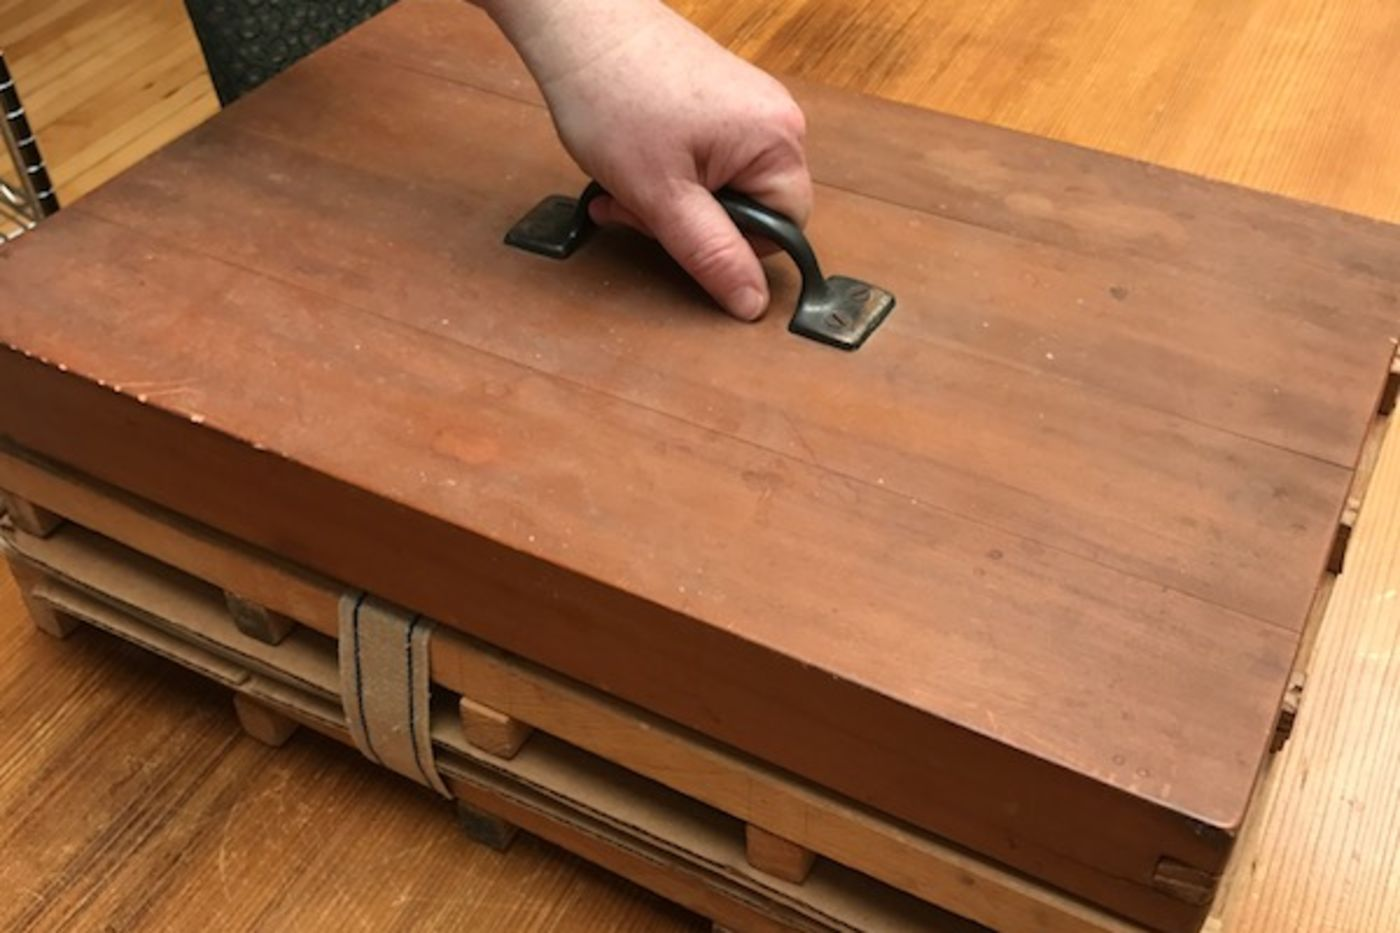 A hand placing a heavy wooden weight with a handle on a wooden stack.